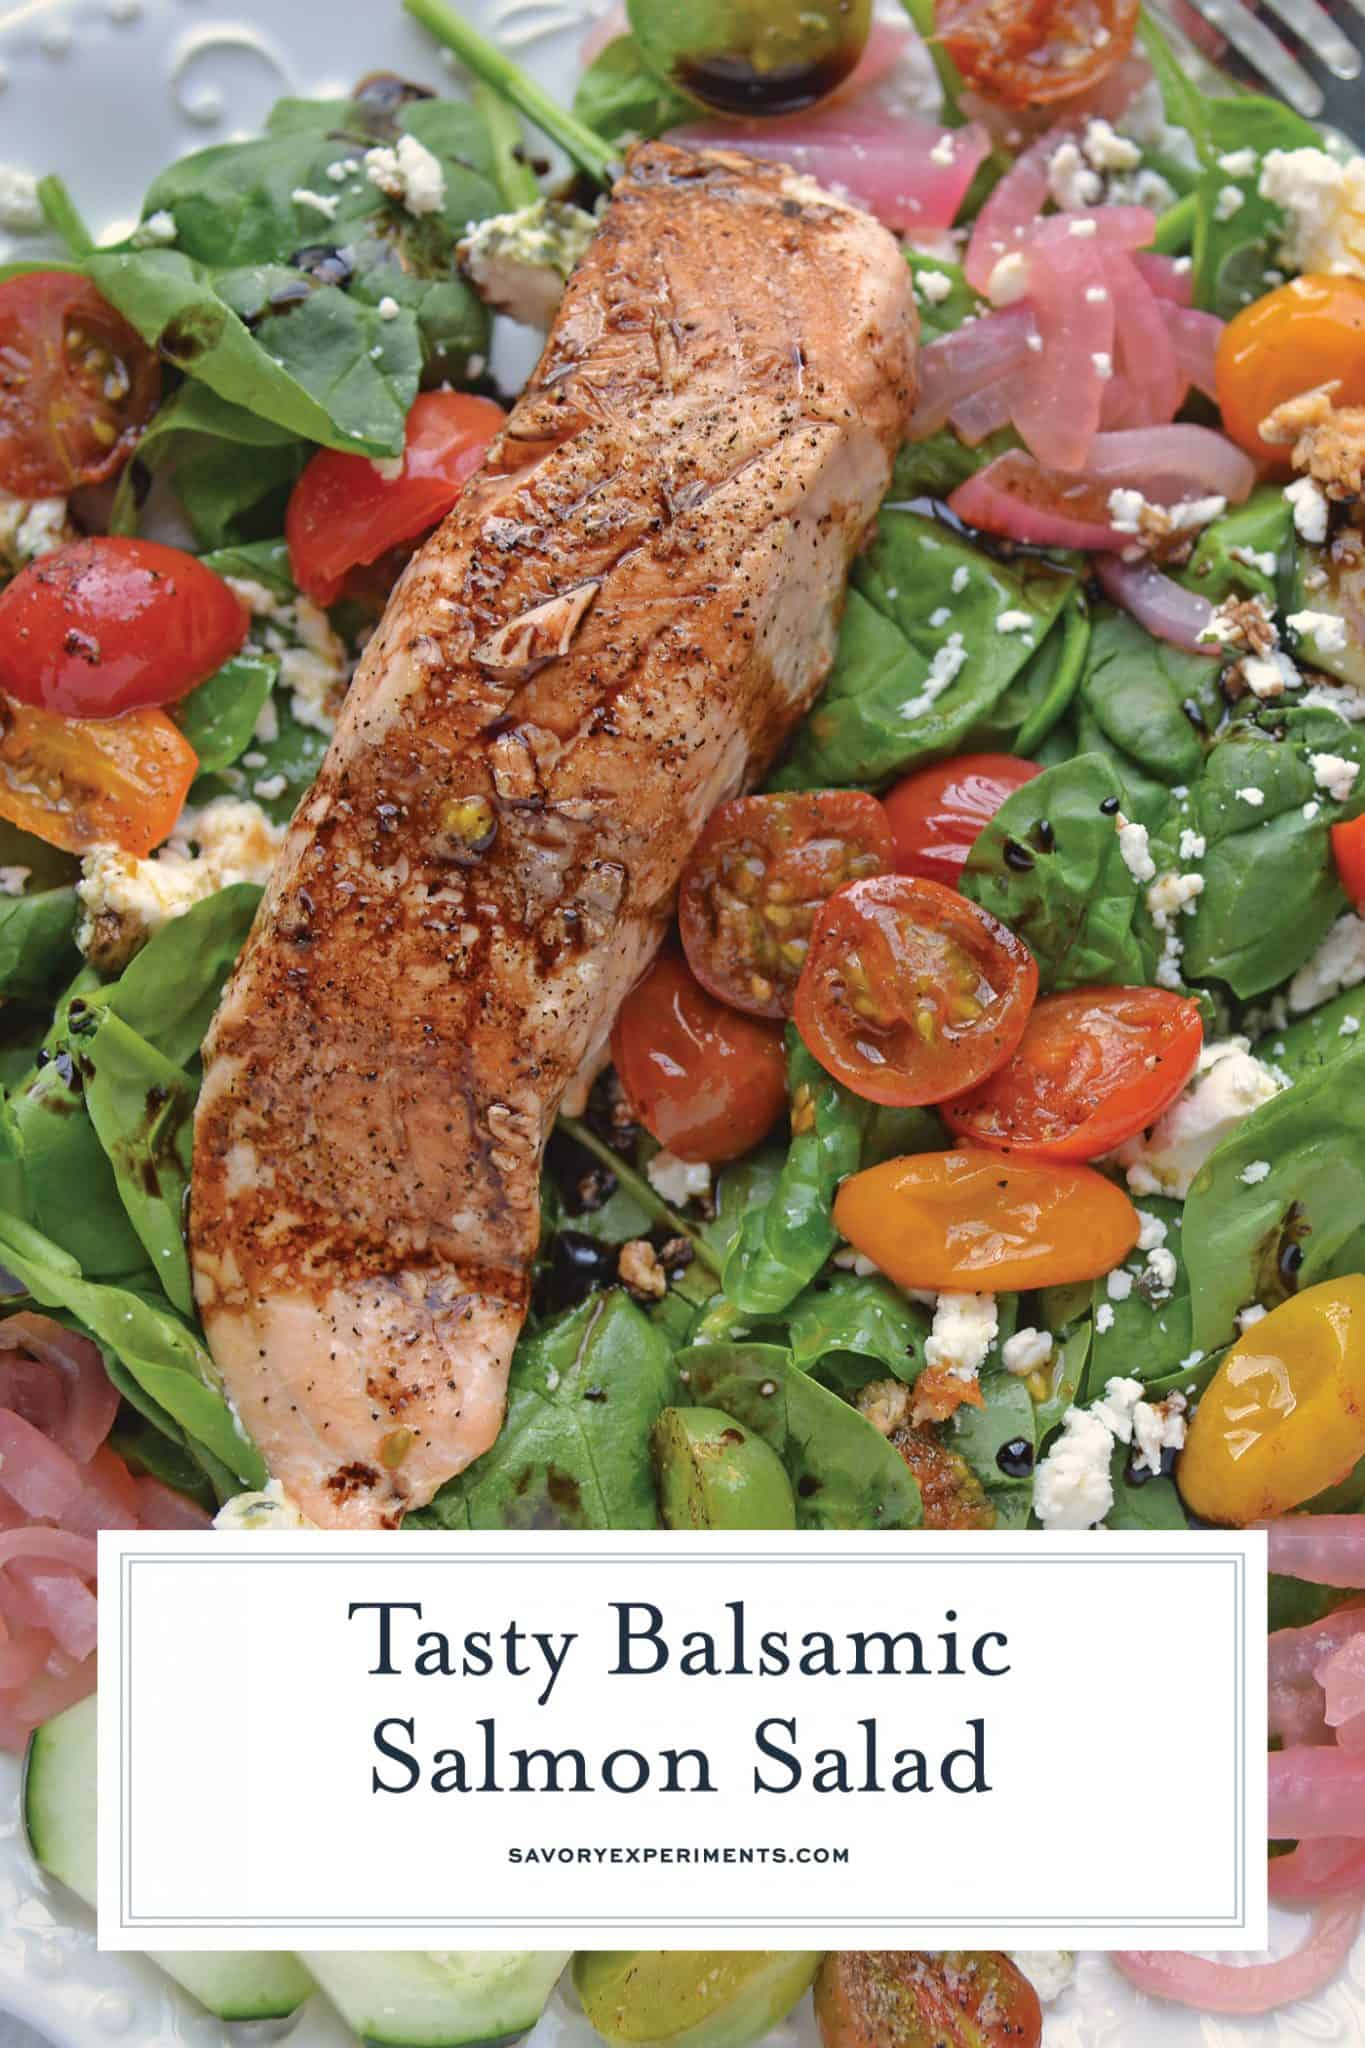 Balsamic Salmon Salad is an easy salad recipe that can be made for  dinner, or even an on the go lunch! Serve with chèvre bread for a delicious combination! #salmonsaladrecipe #salmonrecipes www.savoryexperiments.com